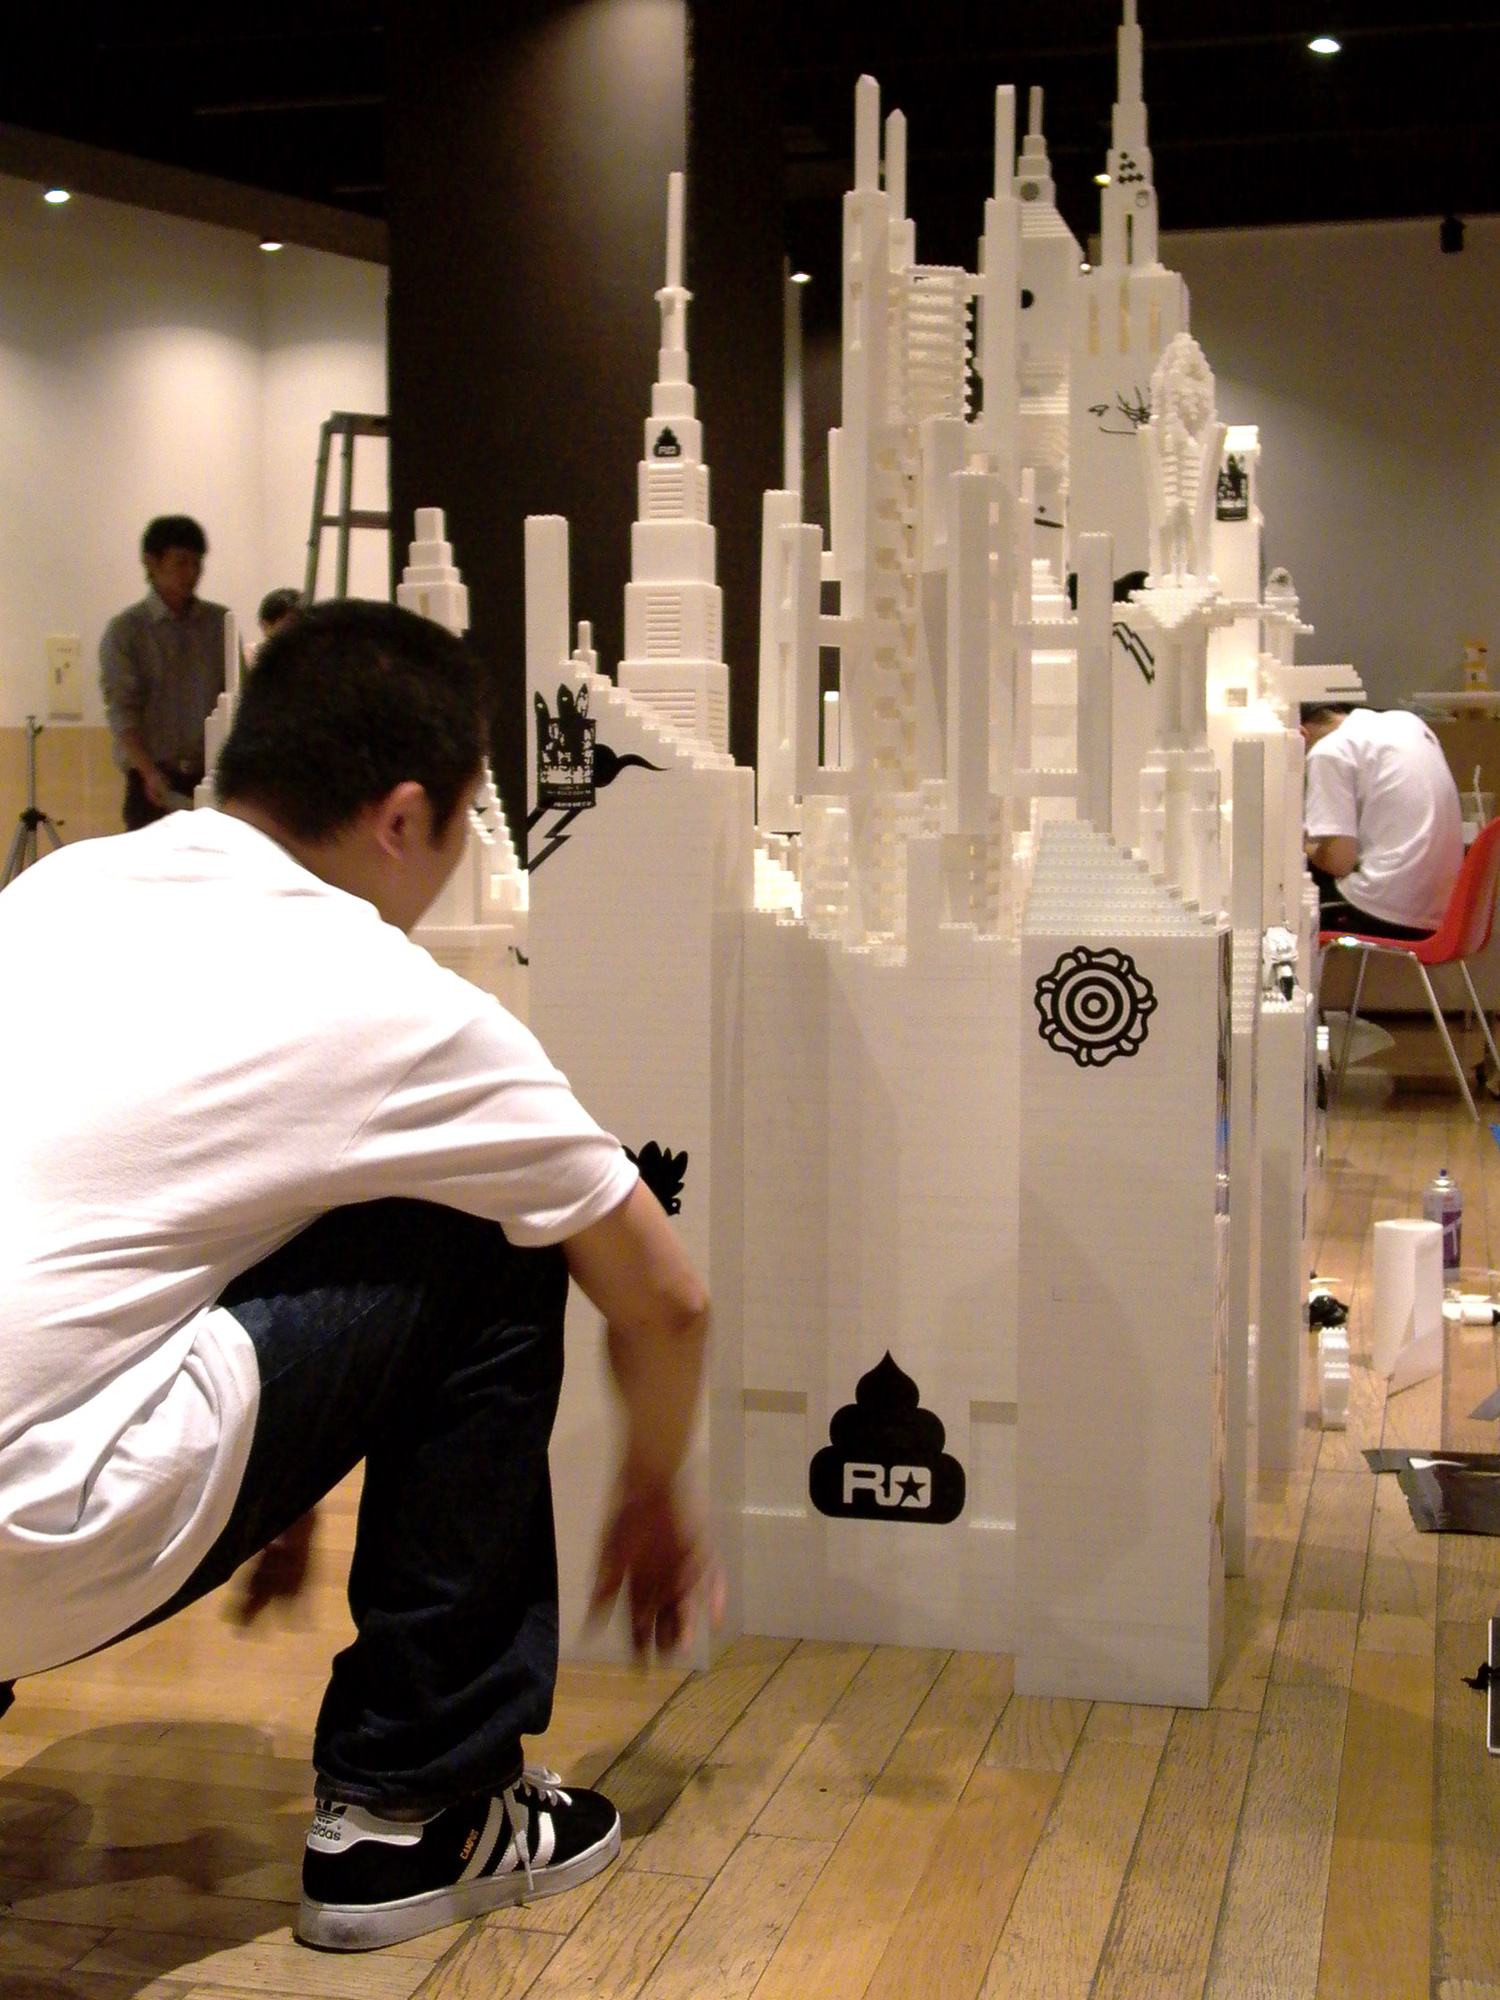 Installation view,  Final Modification II  Ex' Realm Gallery Omotesando, Japan, 2003  with artists José Parlá and Kami